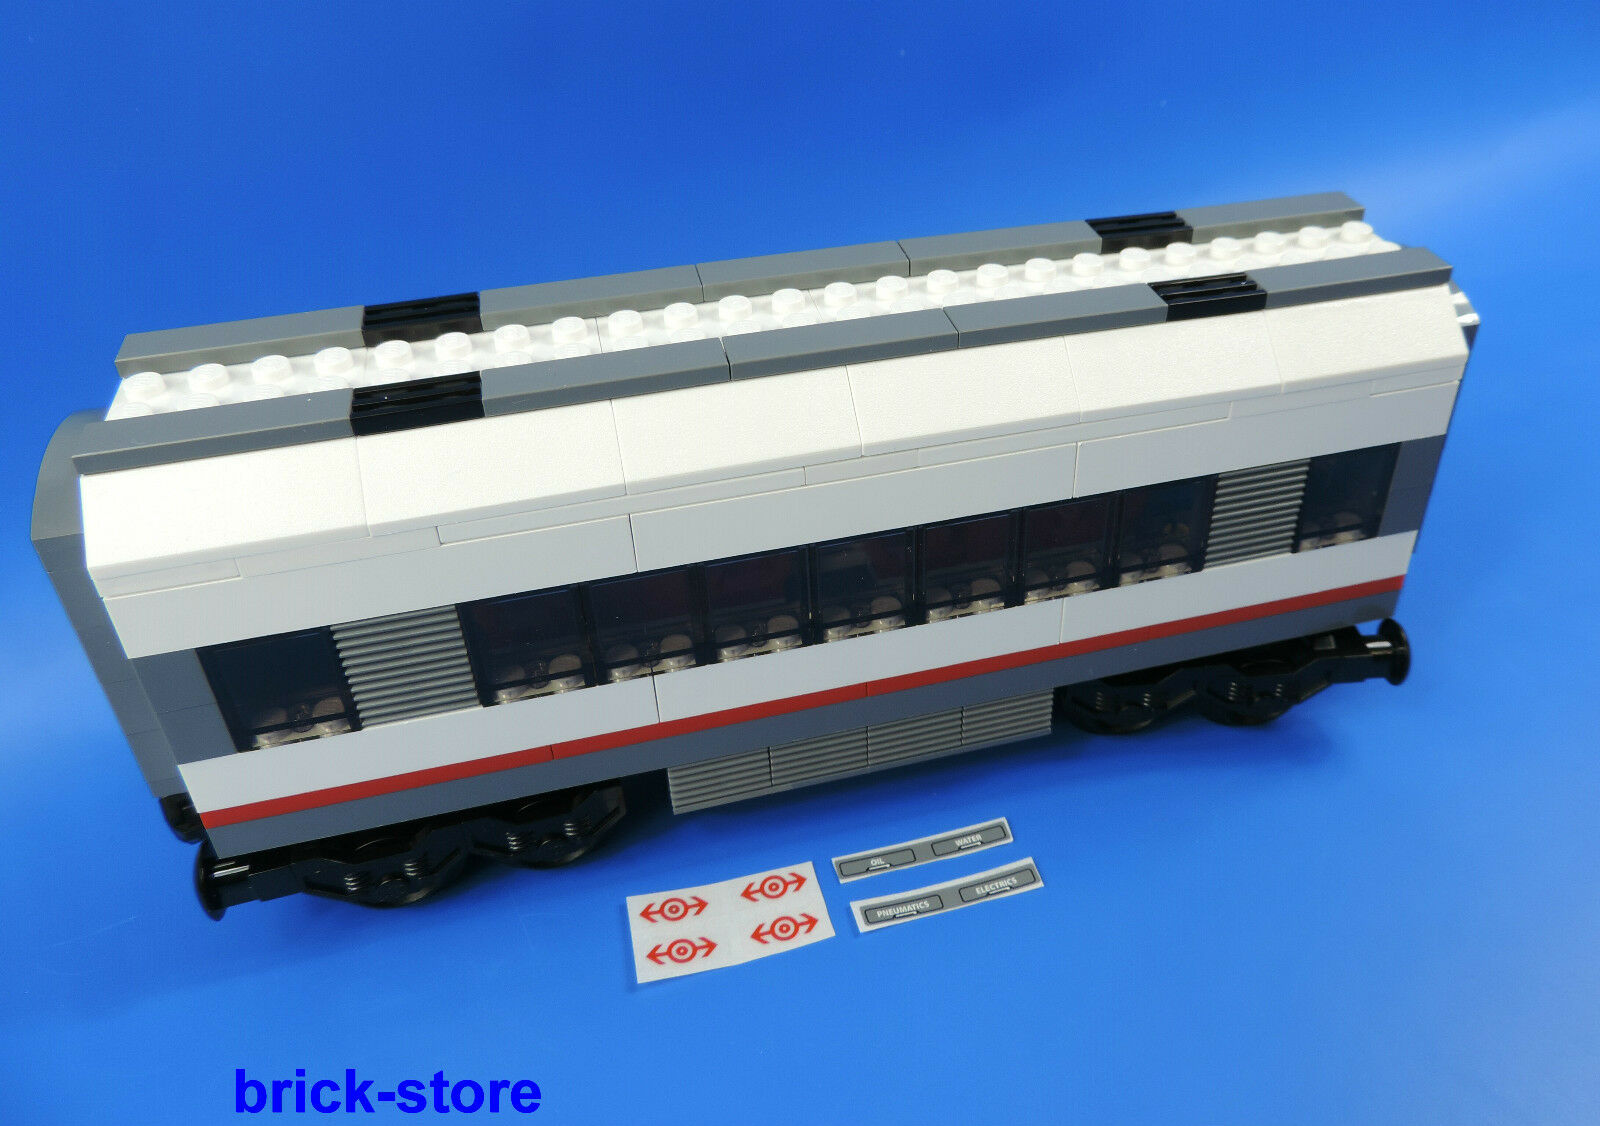 LEGO City   Railway (60051) Wagon Centre Carriage Extension from set 60051